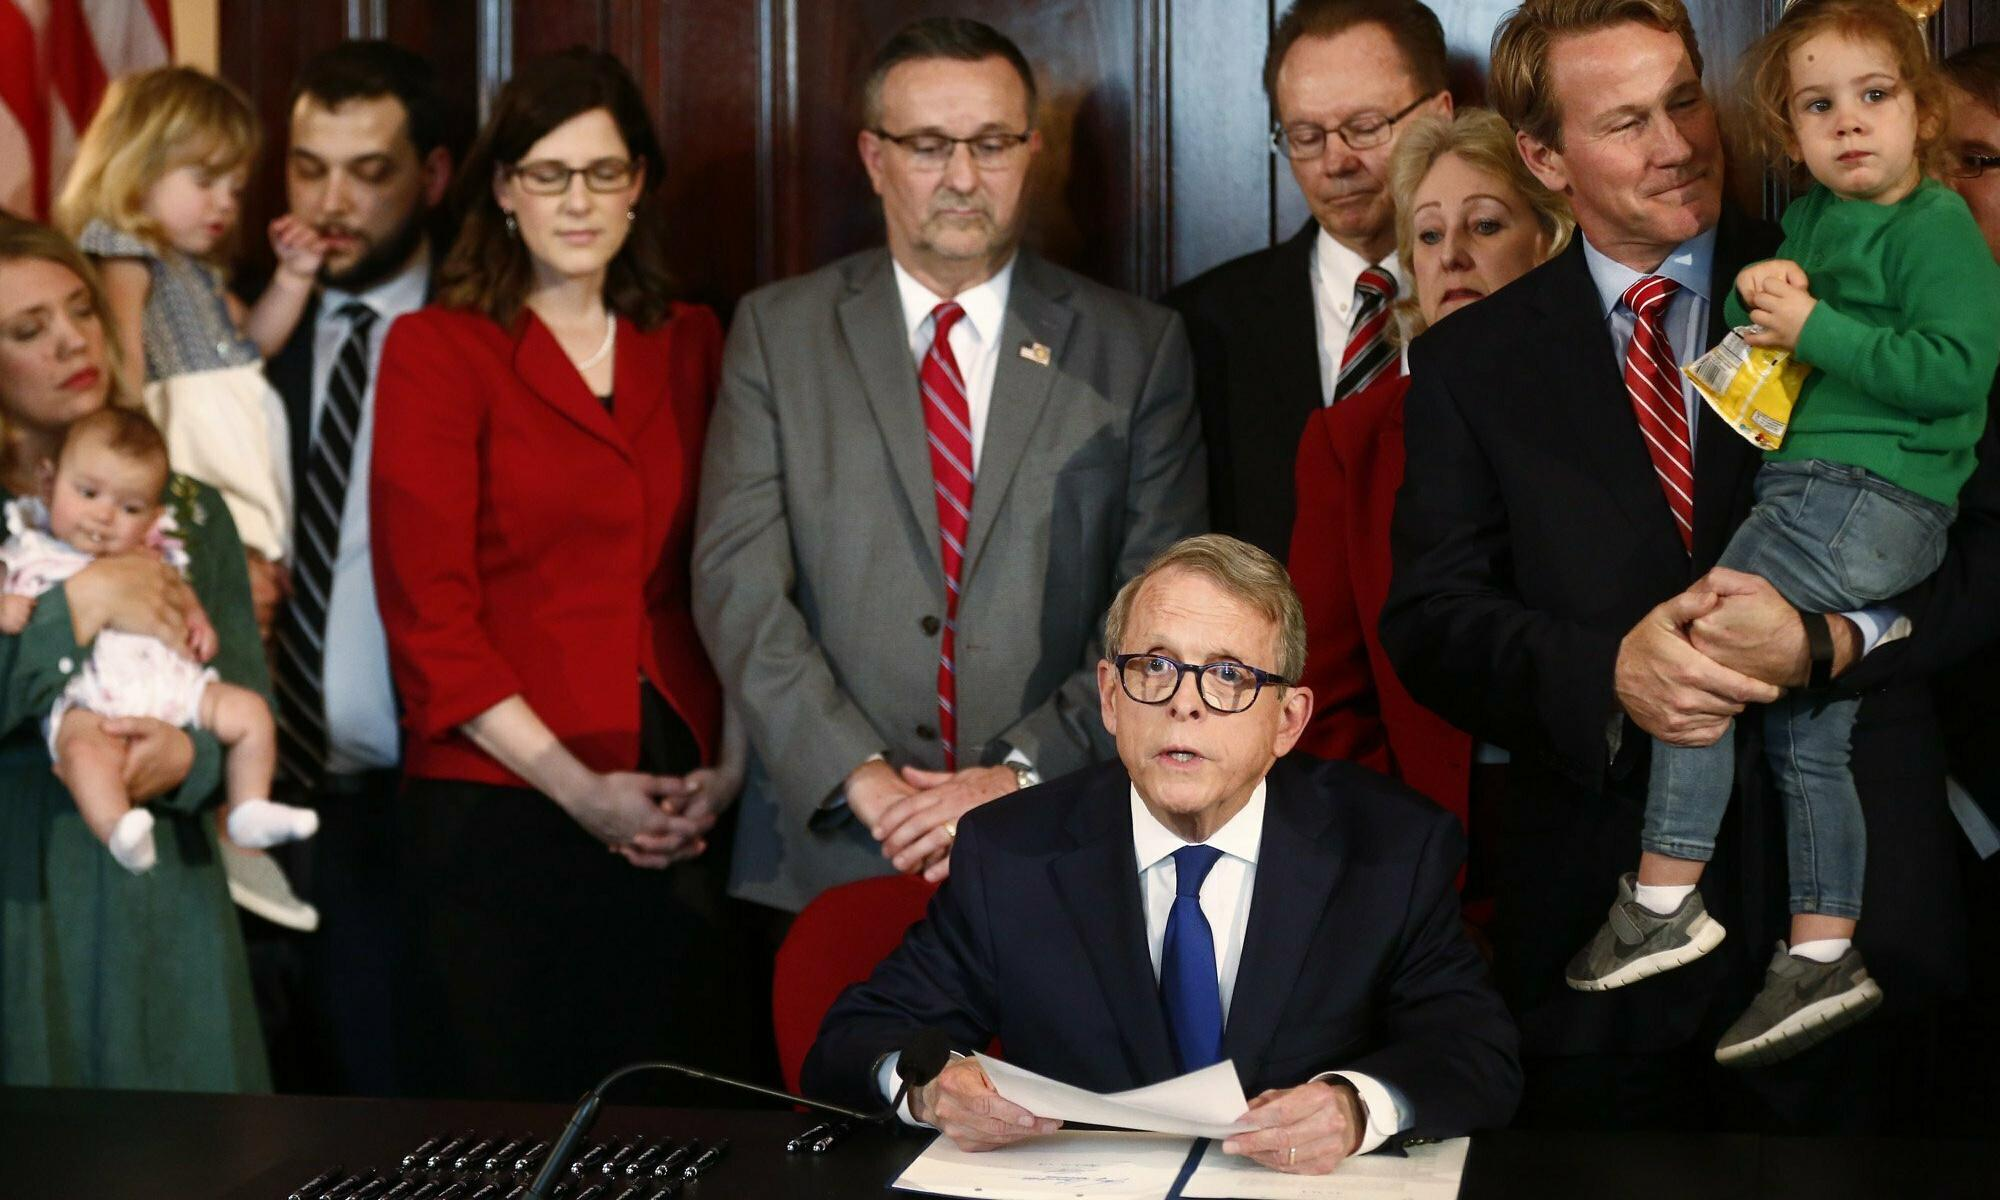 Ohio bill orders doctors to 'reimplant ectopic pregnancy' or face 'abortion murder' charges